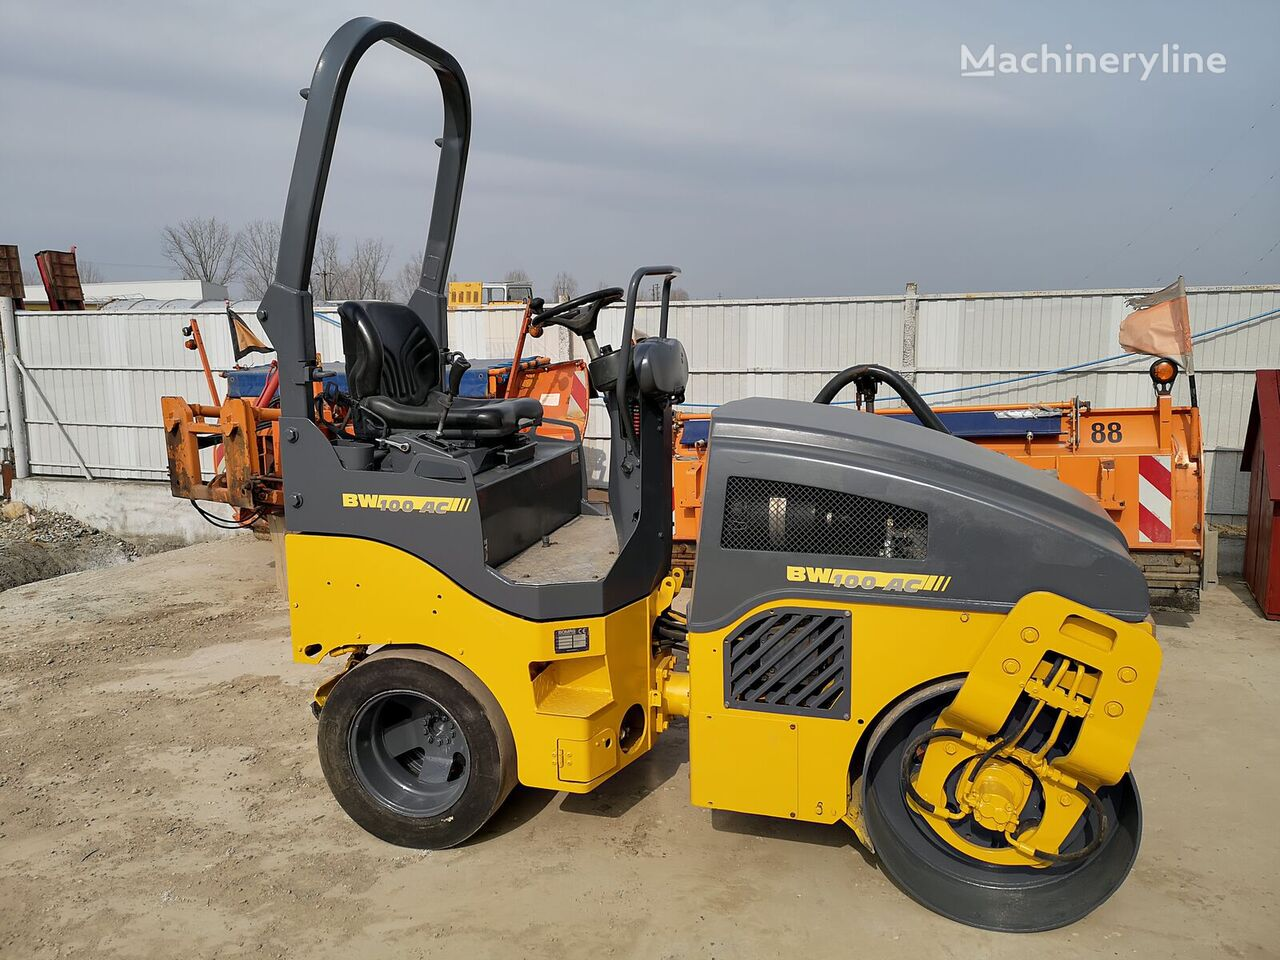 BOMAG BW 100 AC combination roller